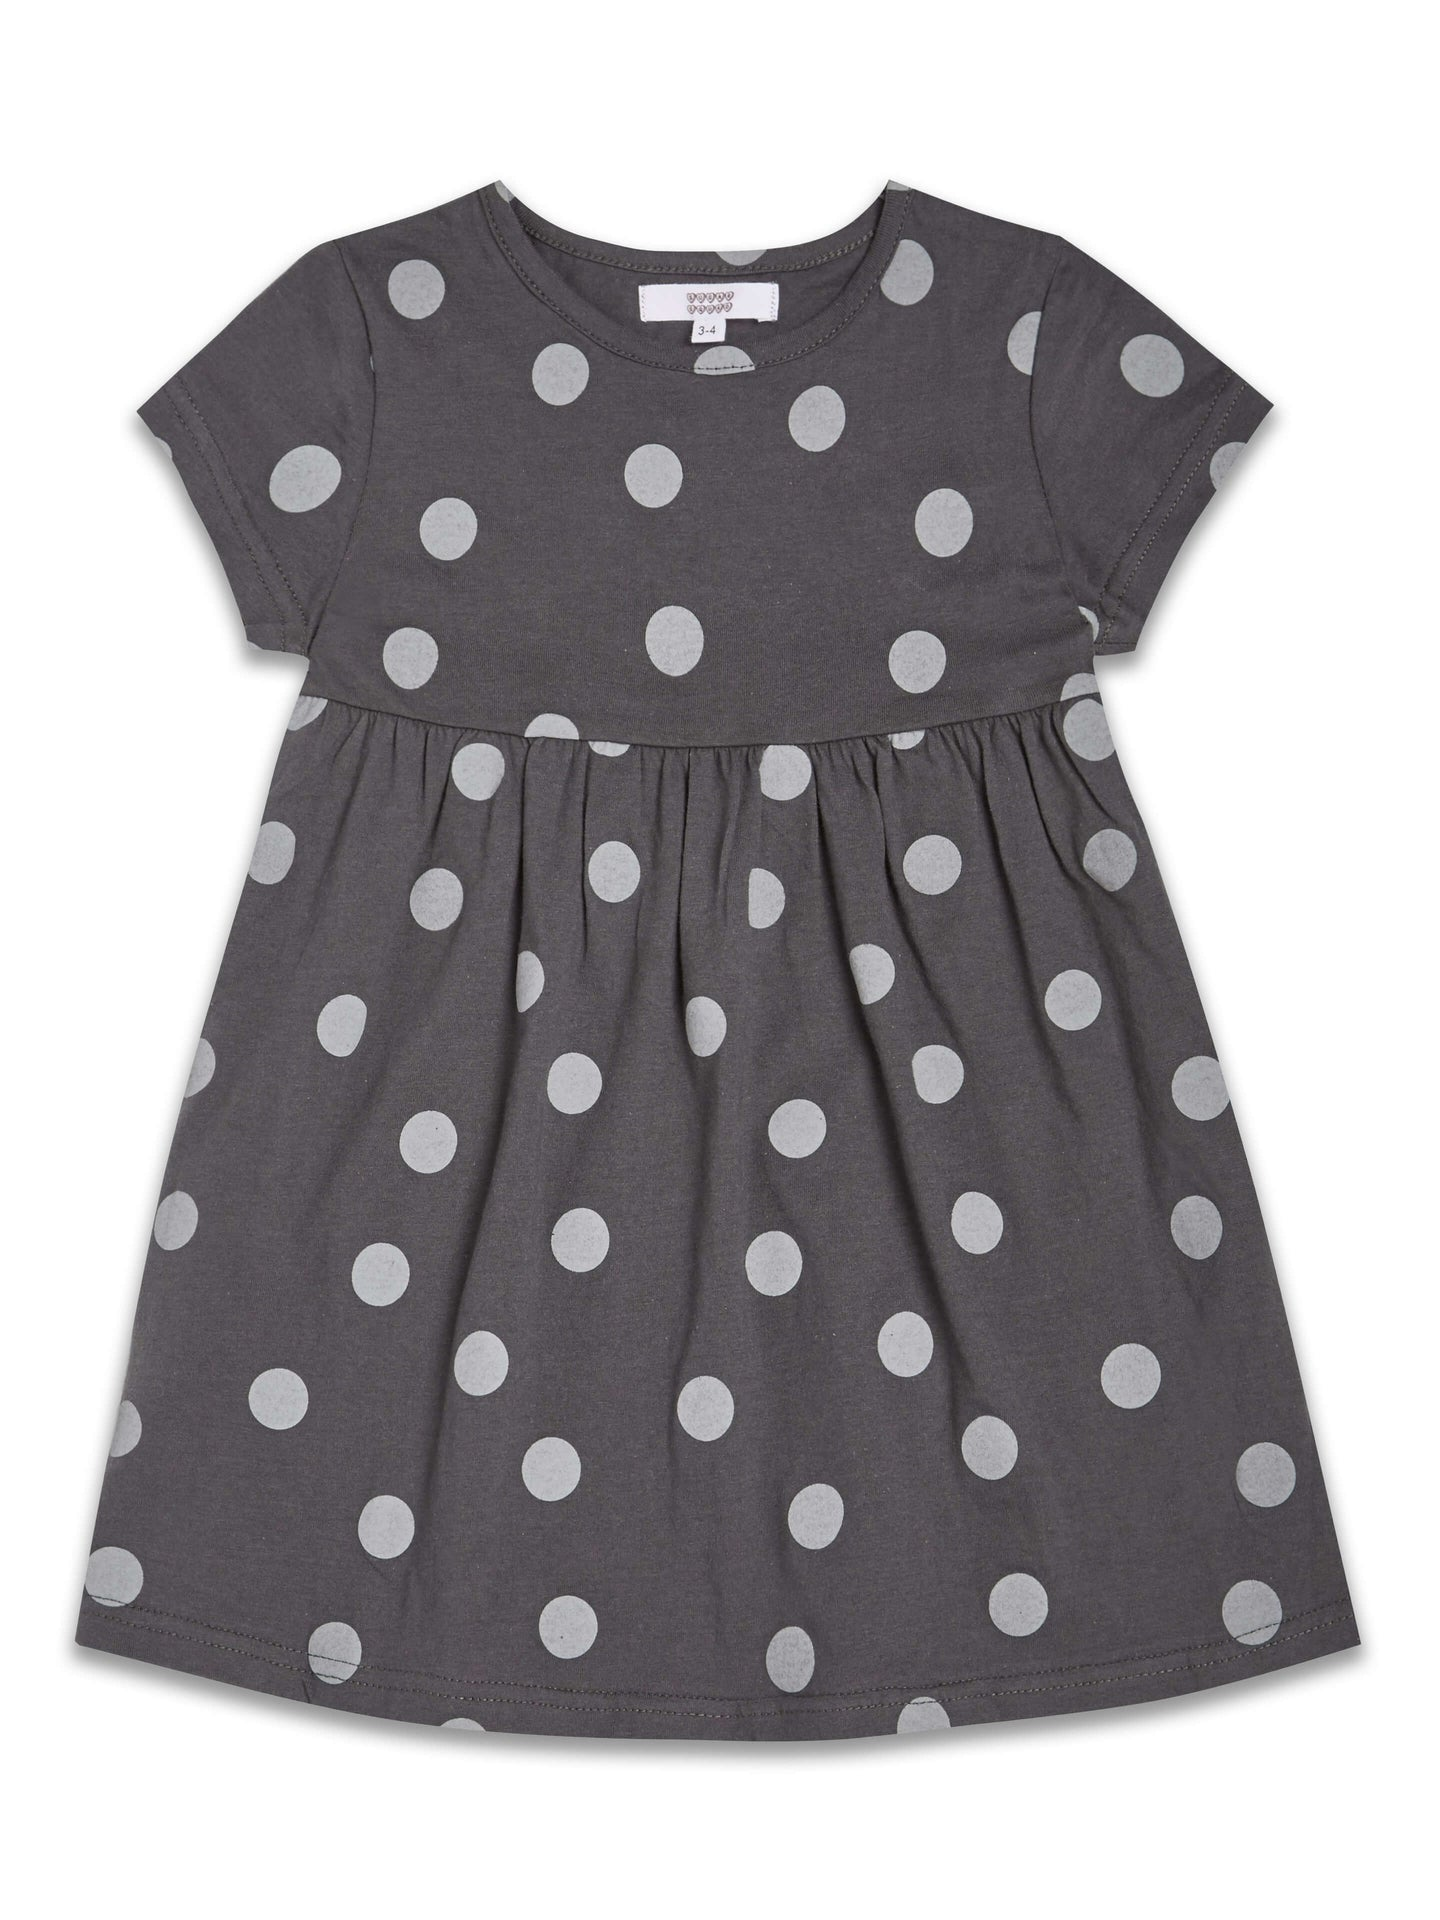 Sugar Squad Polka Dot Girls Dress